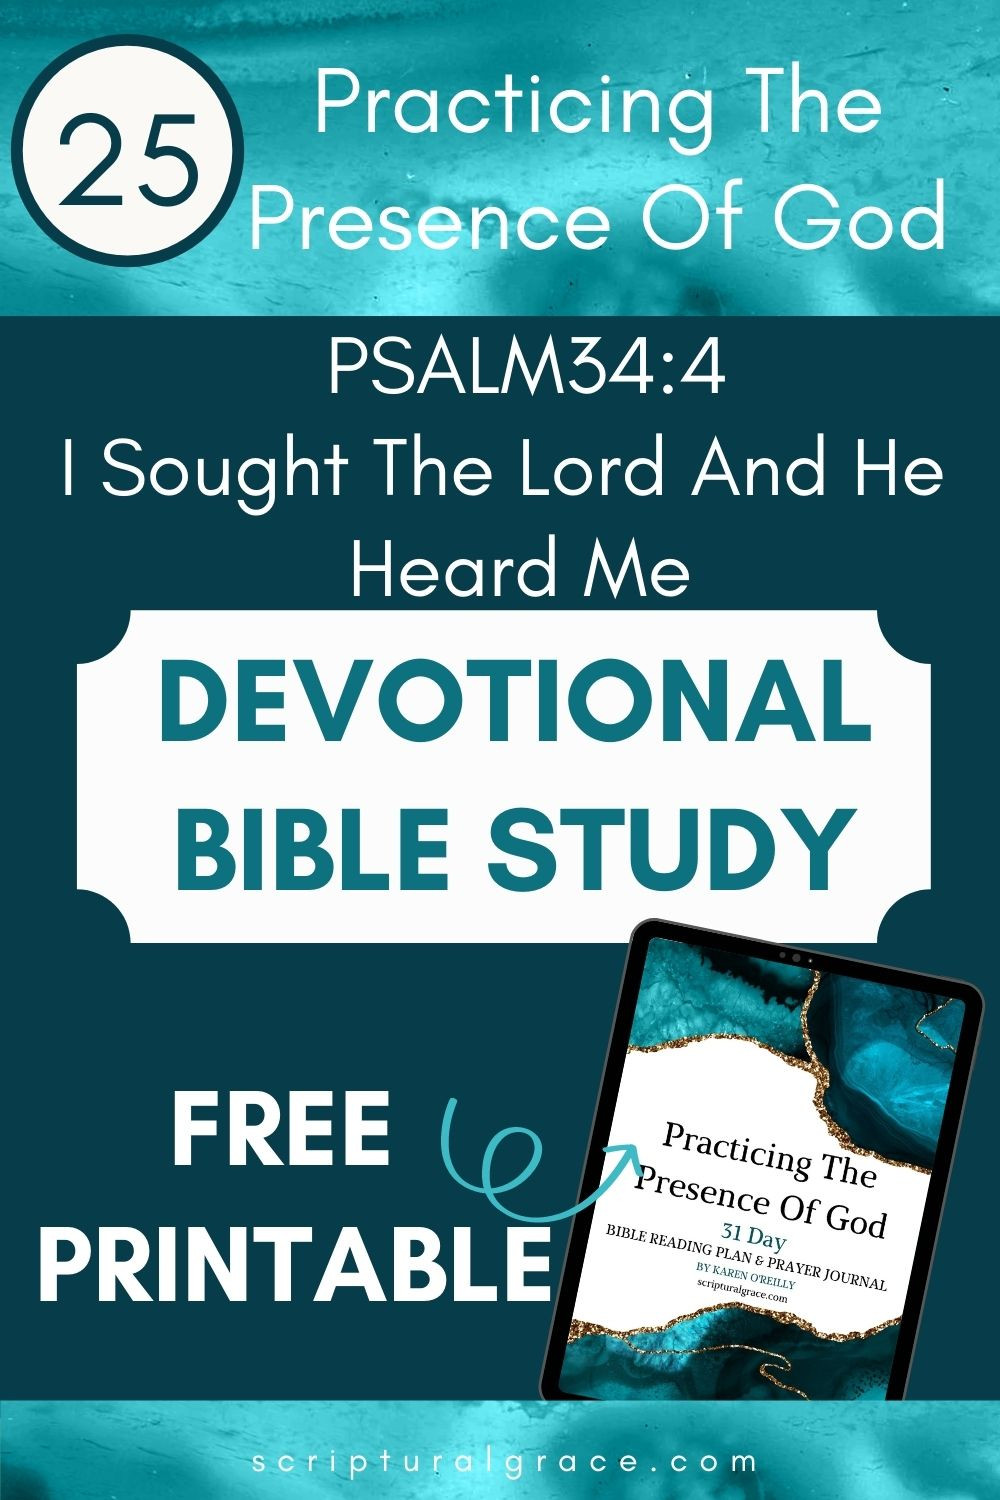 I Sought The Lord And He Heard Me Psalm 34 4. devotional bible study Practicing the presence of God free printable prayer journal